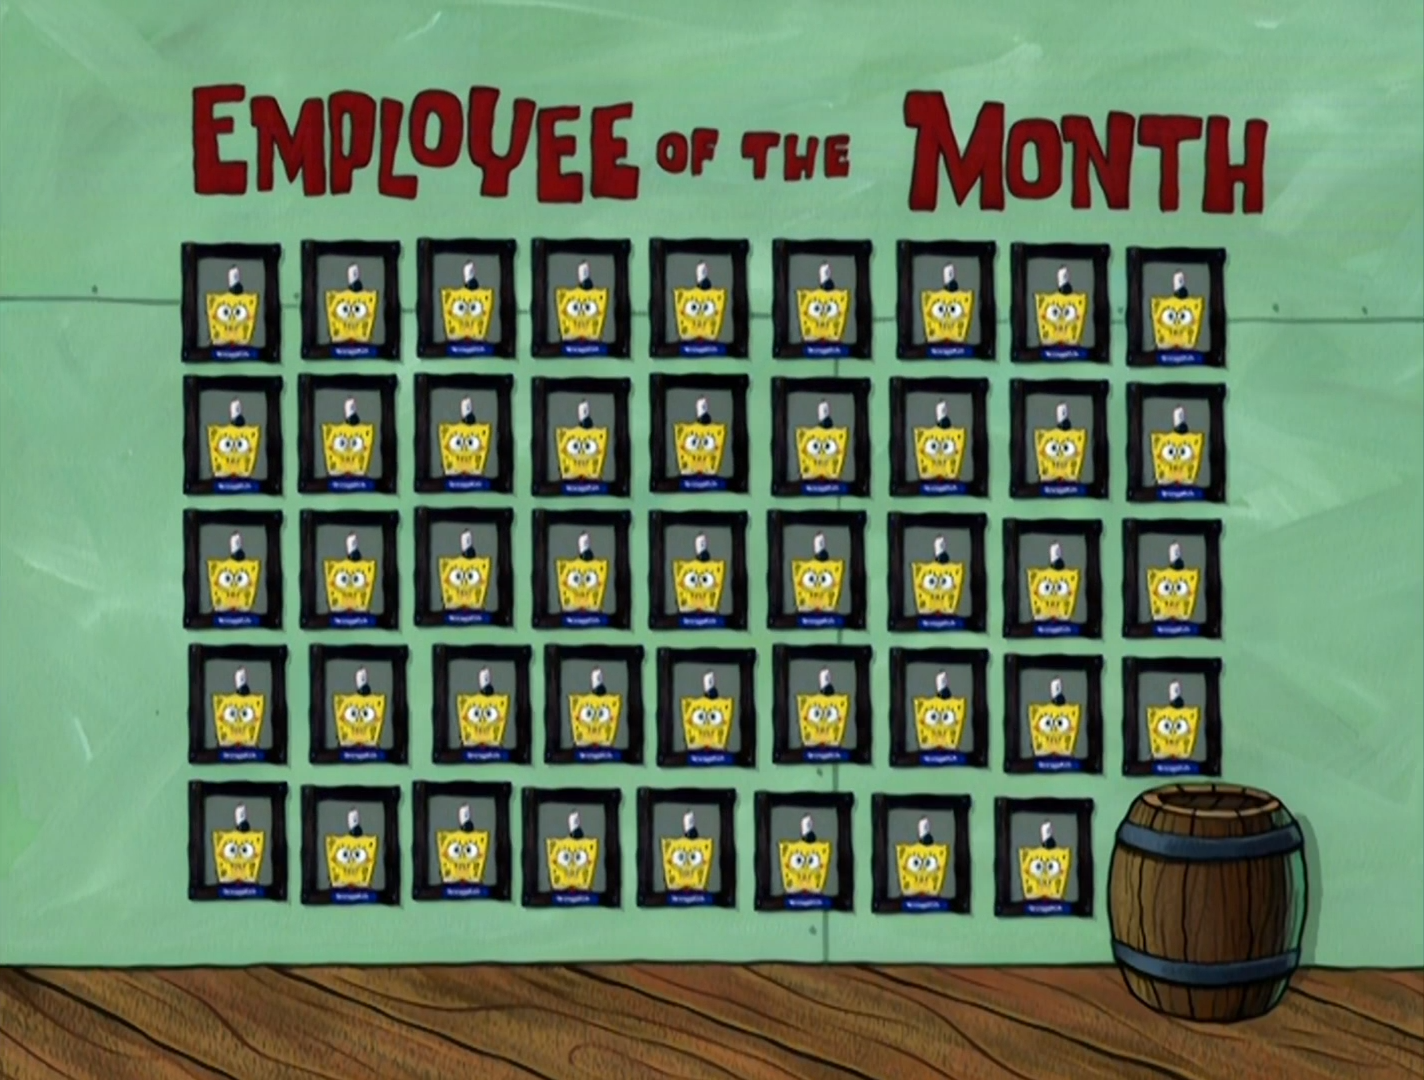 Employee of the Month wall